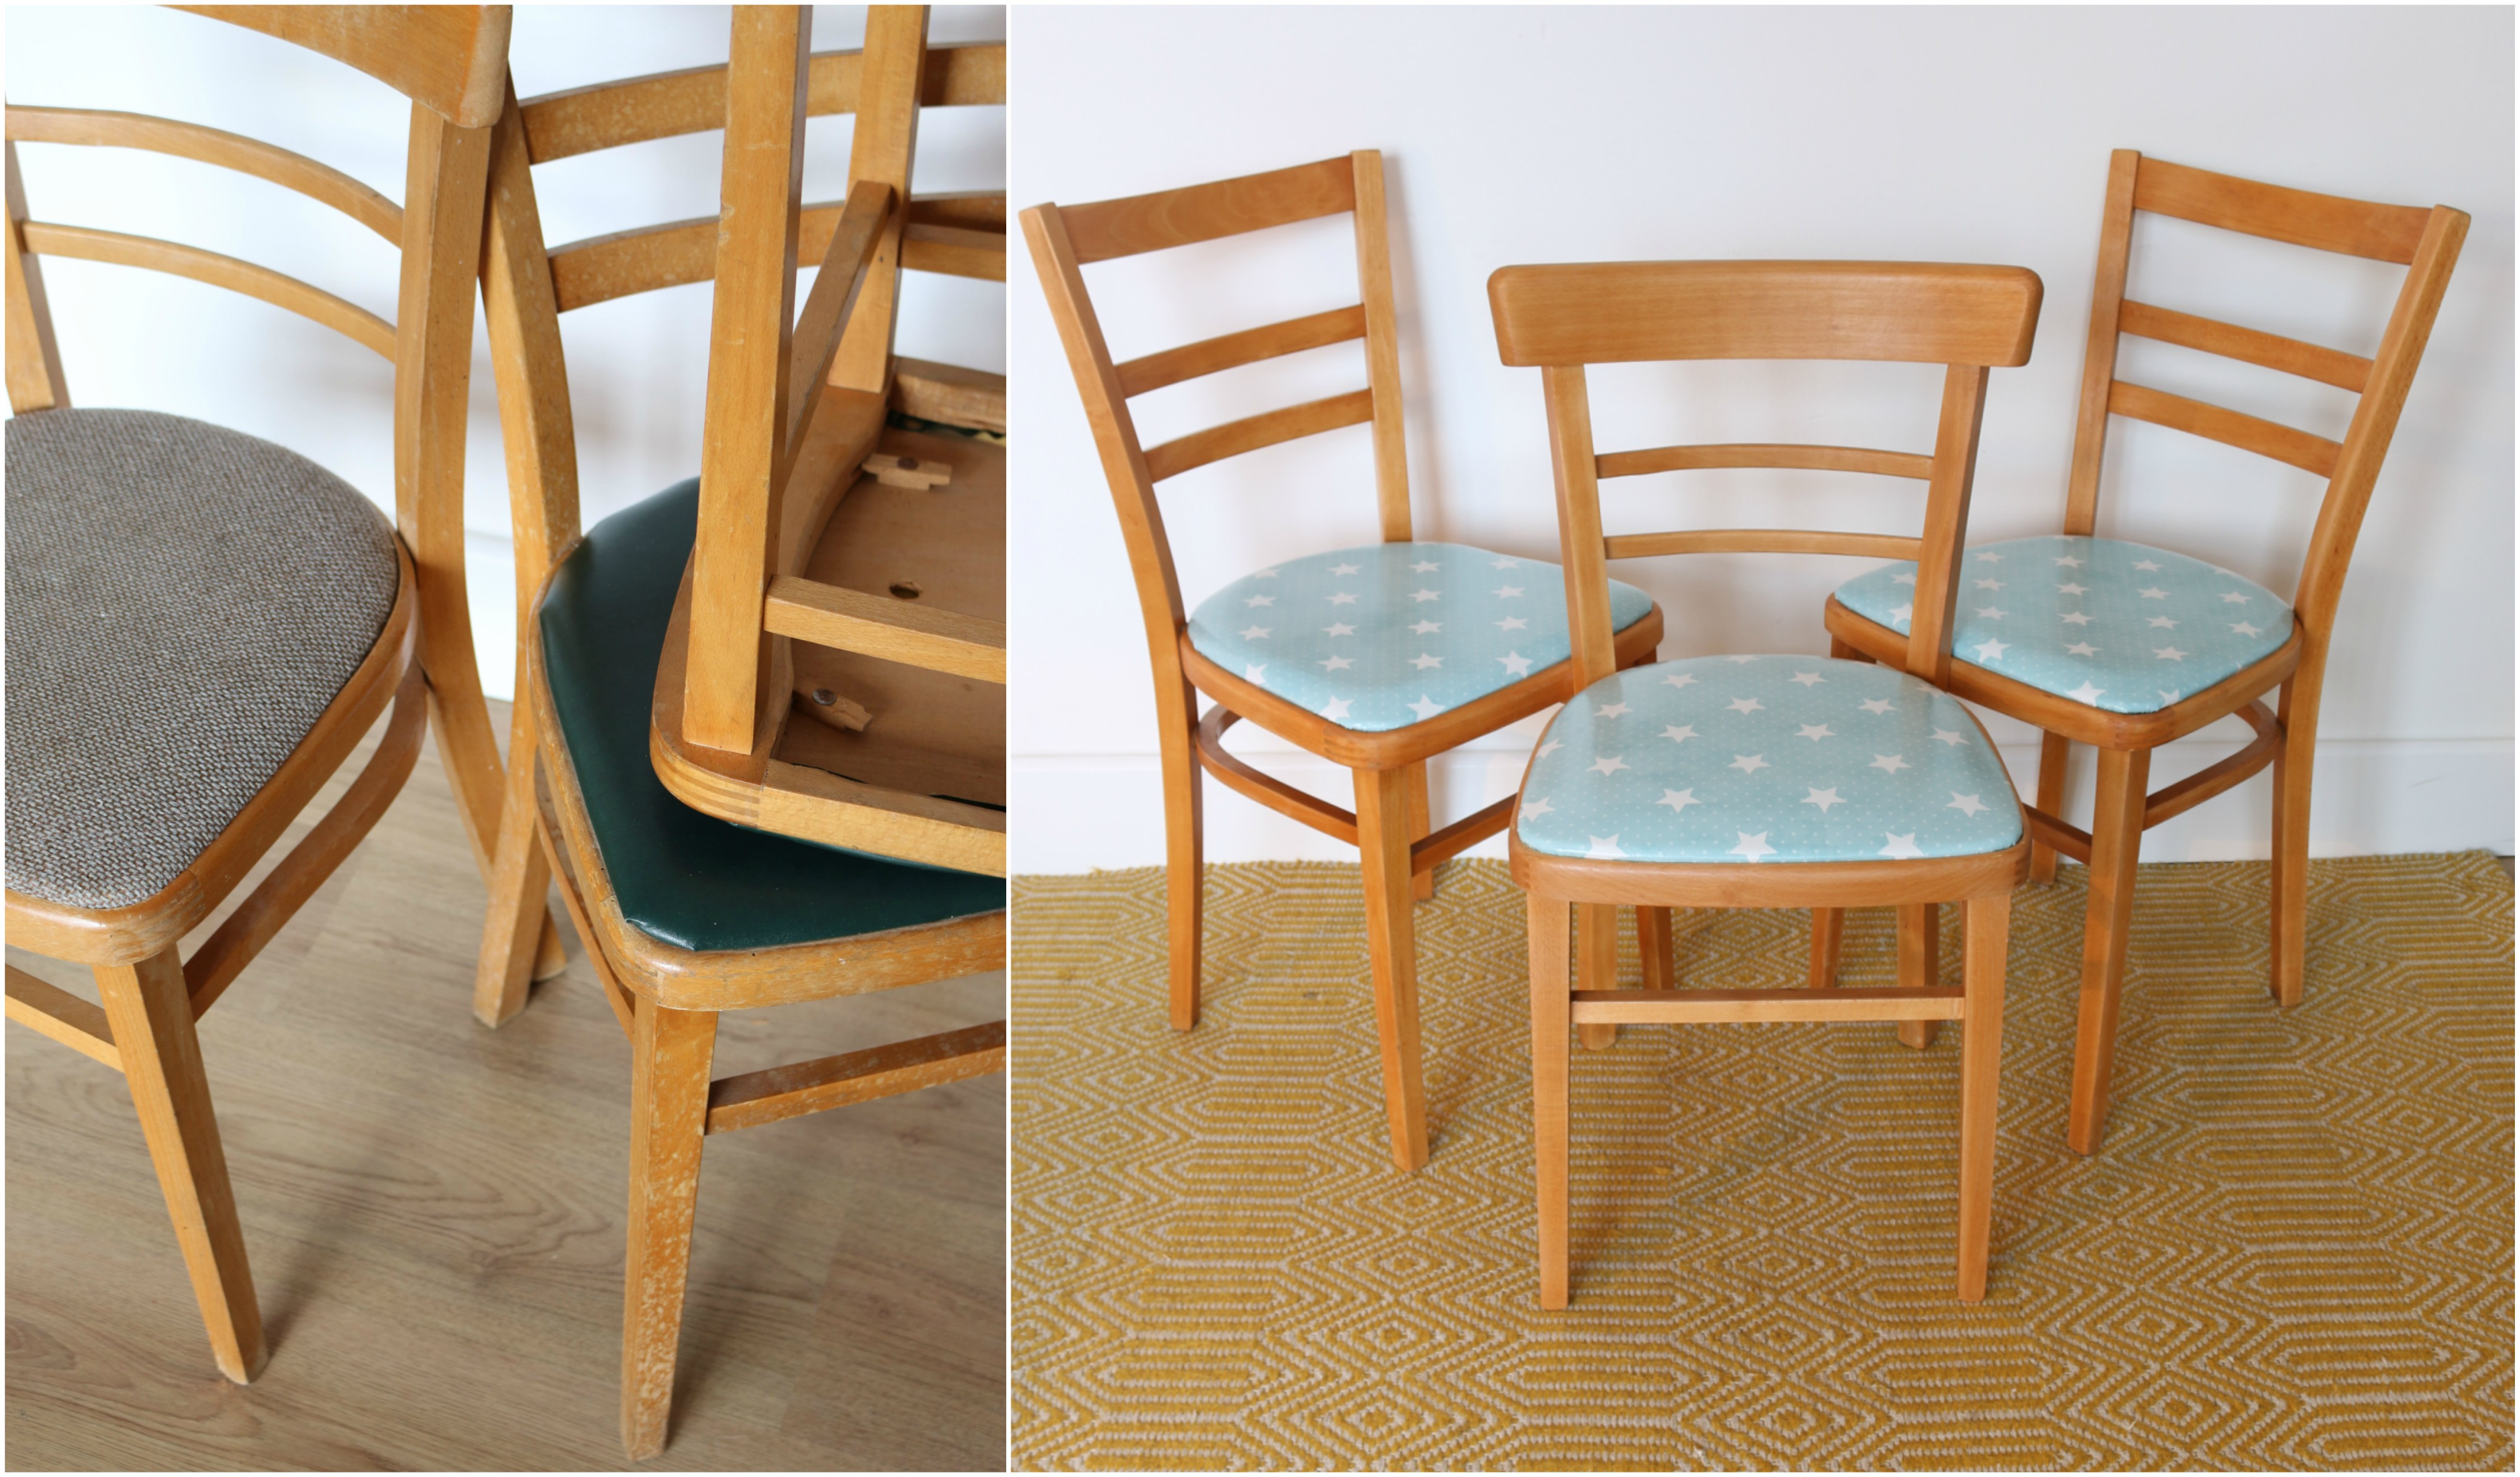 Diy Dining Chairs Dining Chair Makeover Diy Upholstered Chairs The Handy Mano